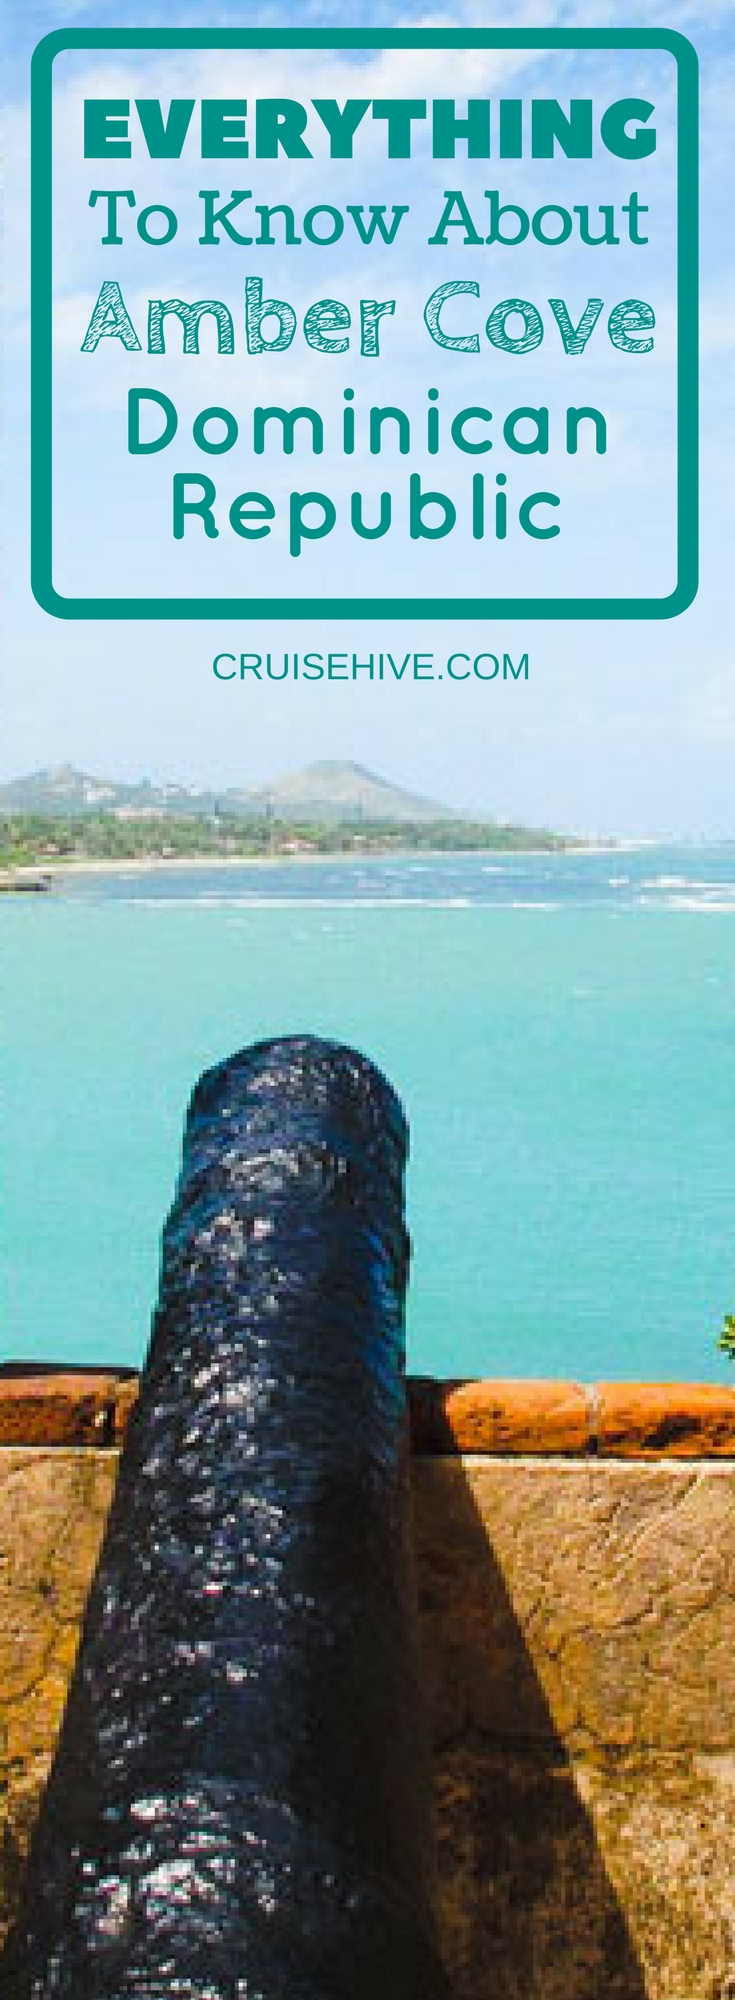 Everything You Should Know About Amber Cove Dominican Republic